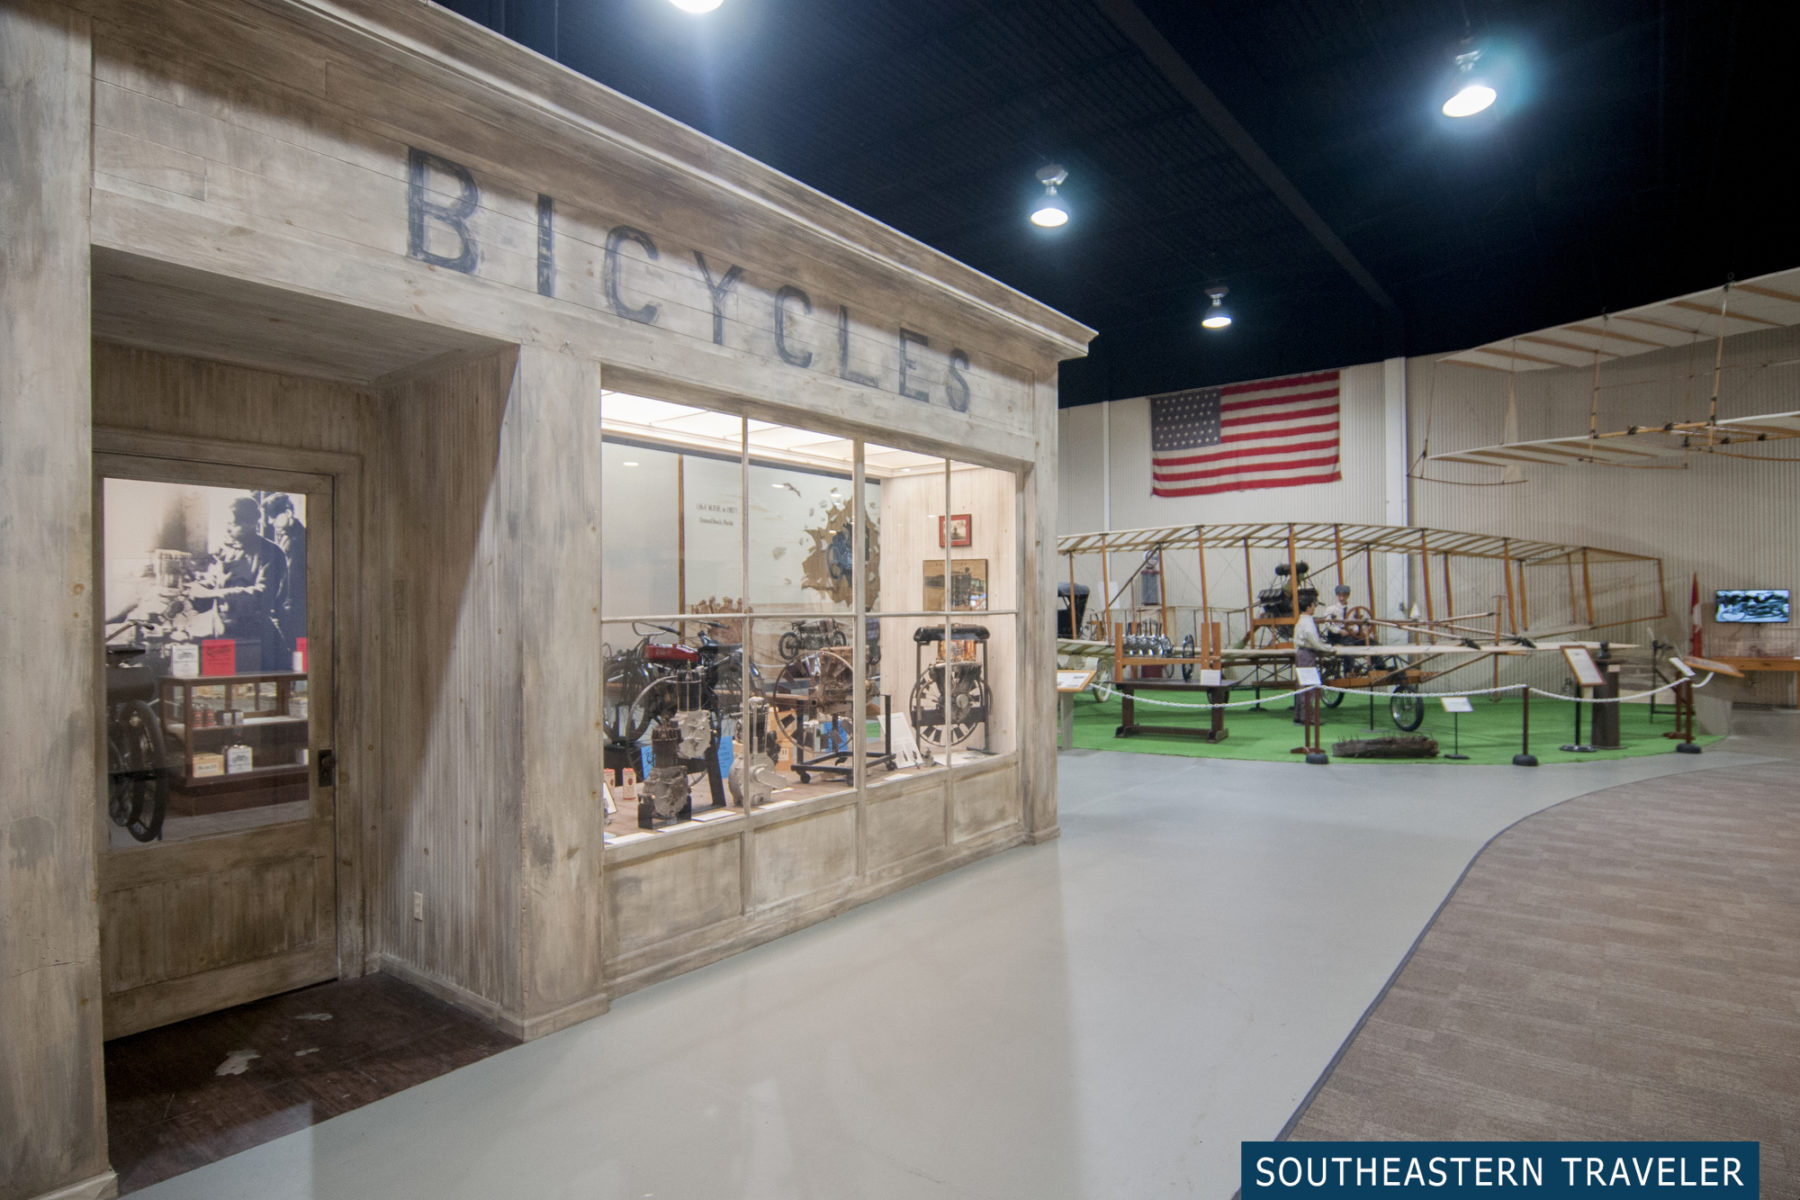 Bicycles and airplanes at the Glenn H. Curtiss Aviation Museum in Hammondsport, New York